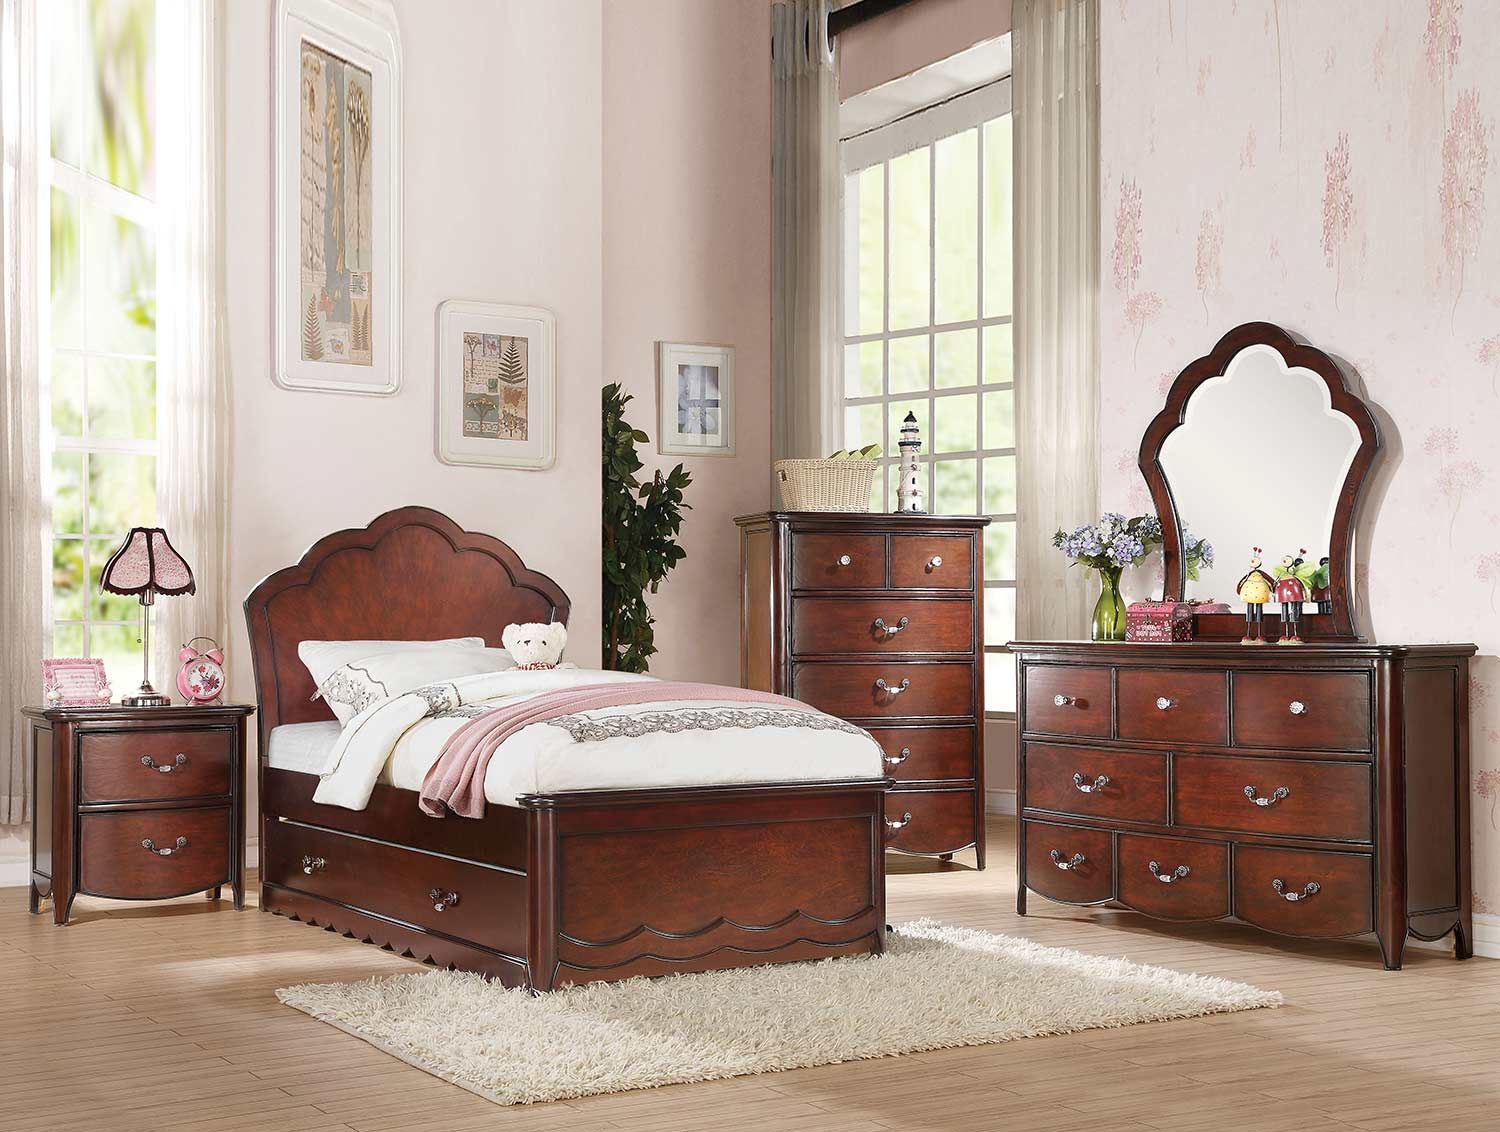 Acme Cecilie Bedroom Set - Cherry